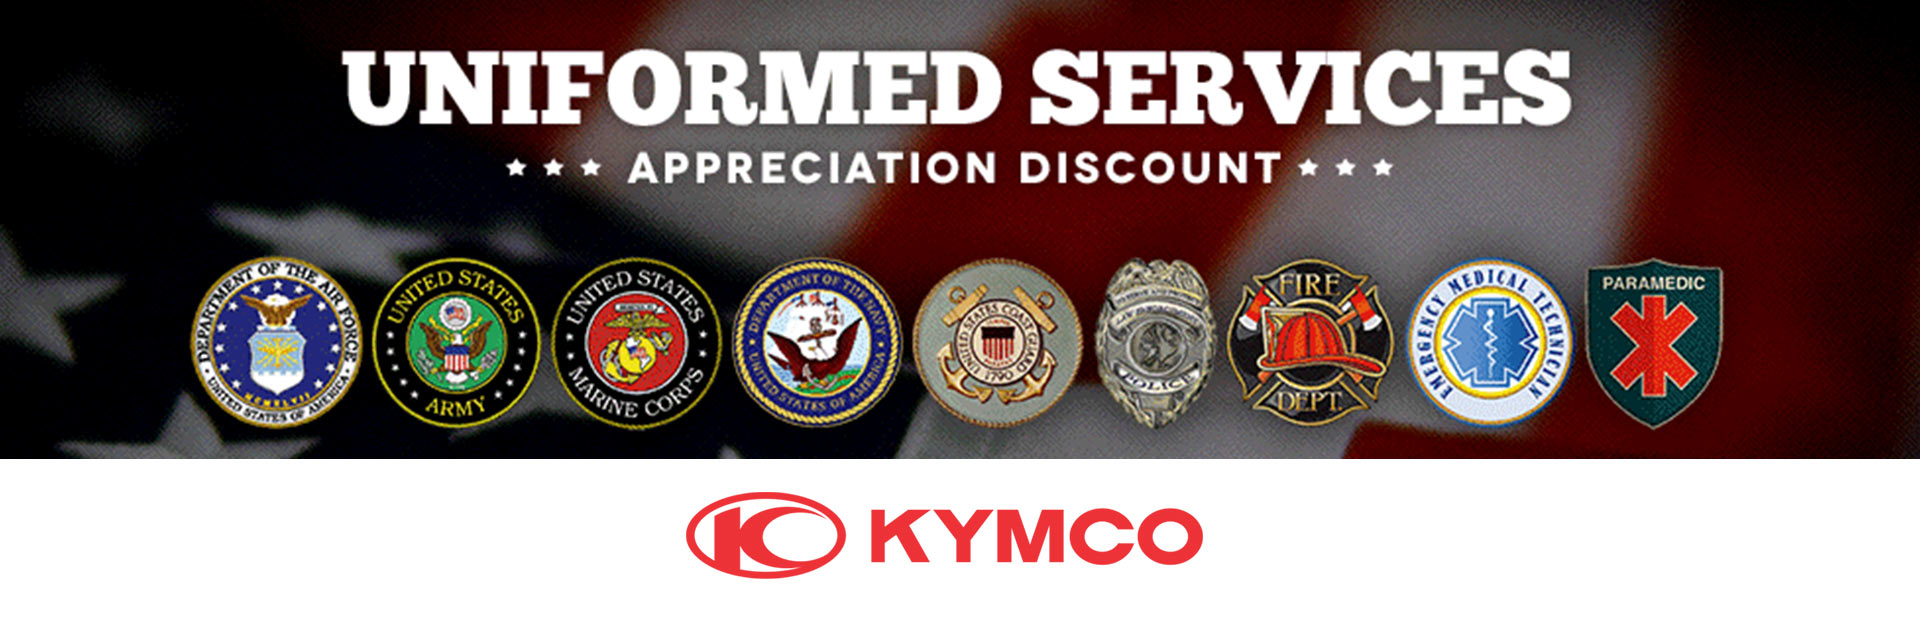 KYMCO: Uniformed Services Appreciation Discount